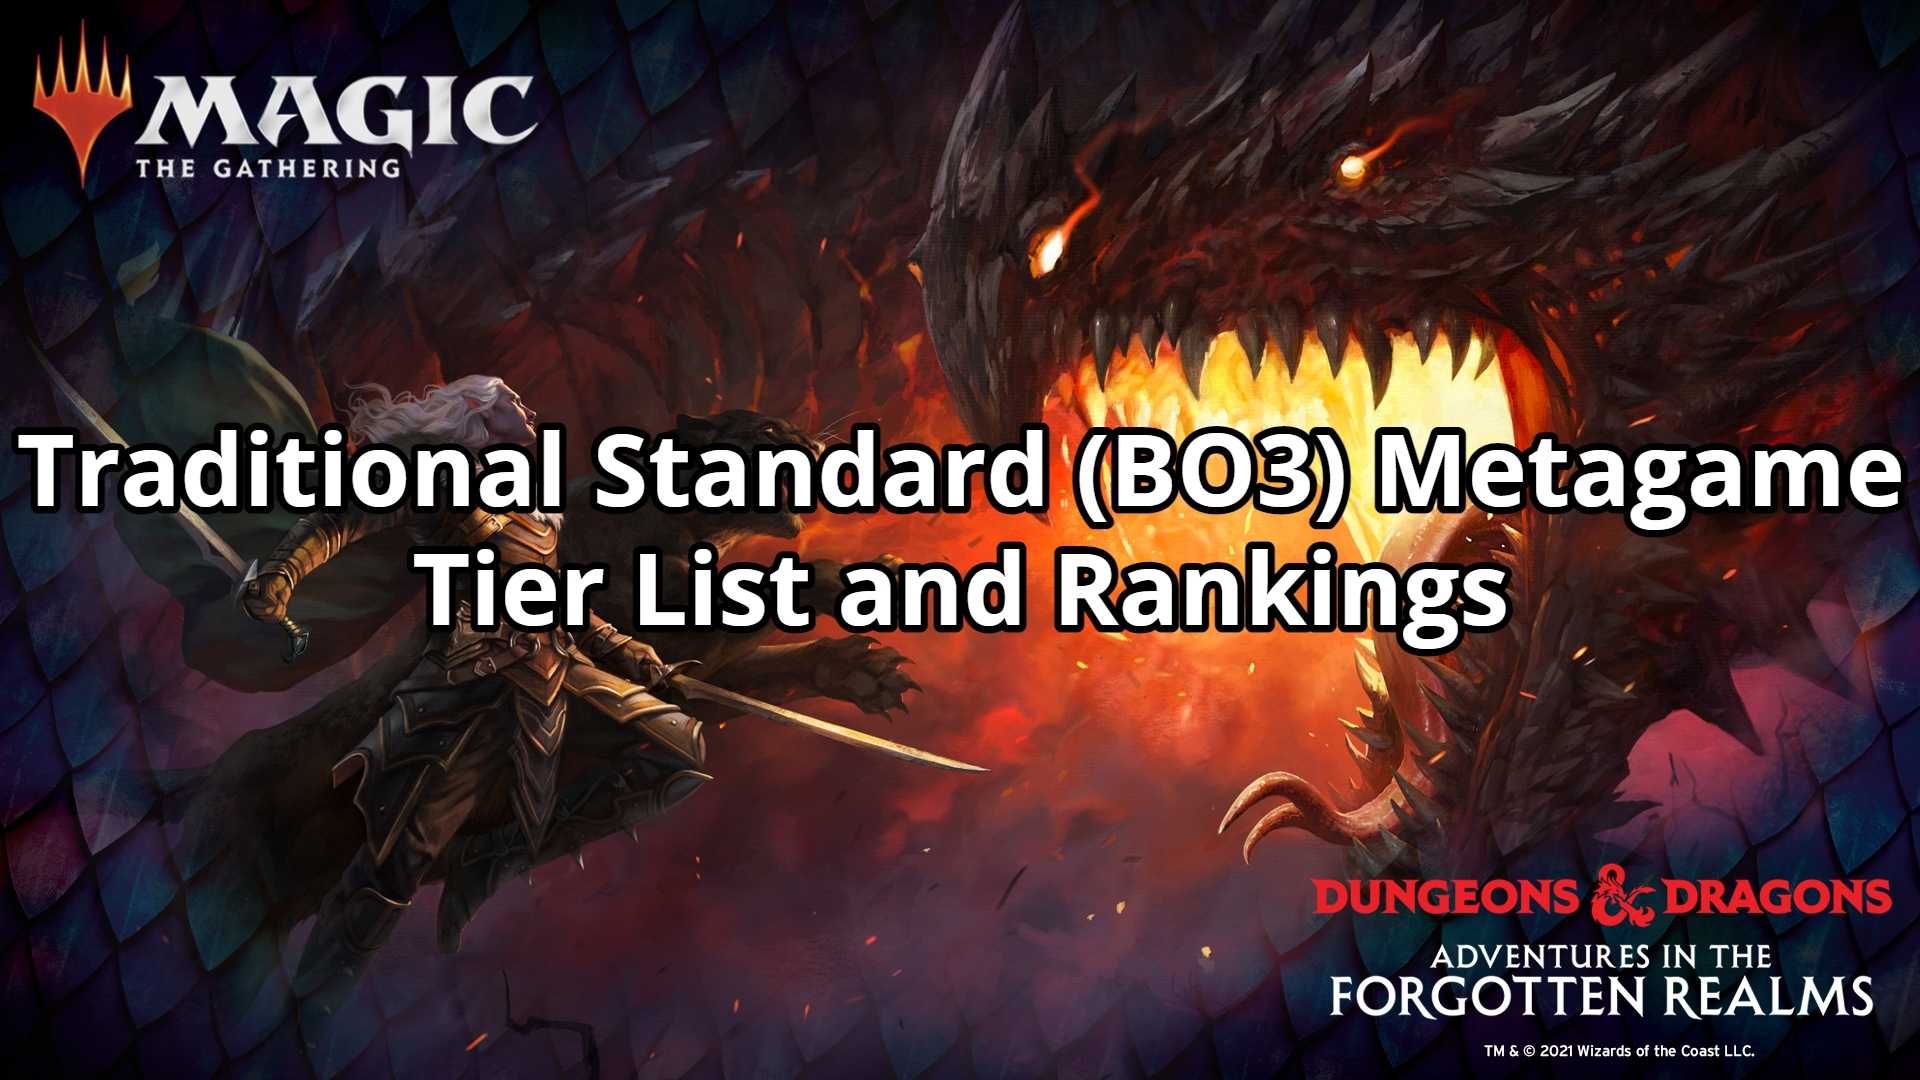 Traditional Standard (BO3) Metagame Tier List and Rankings